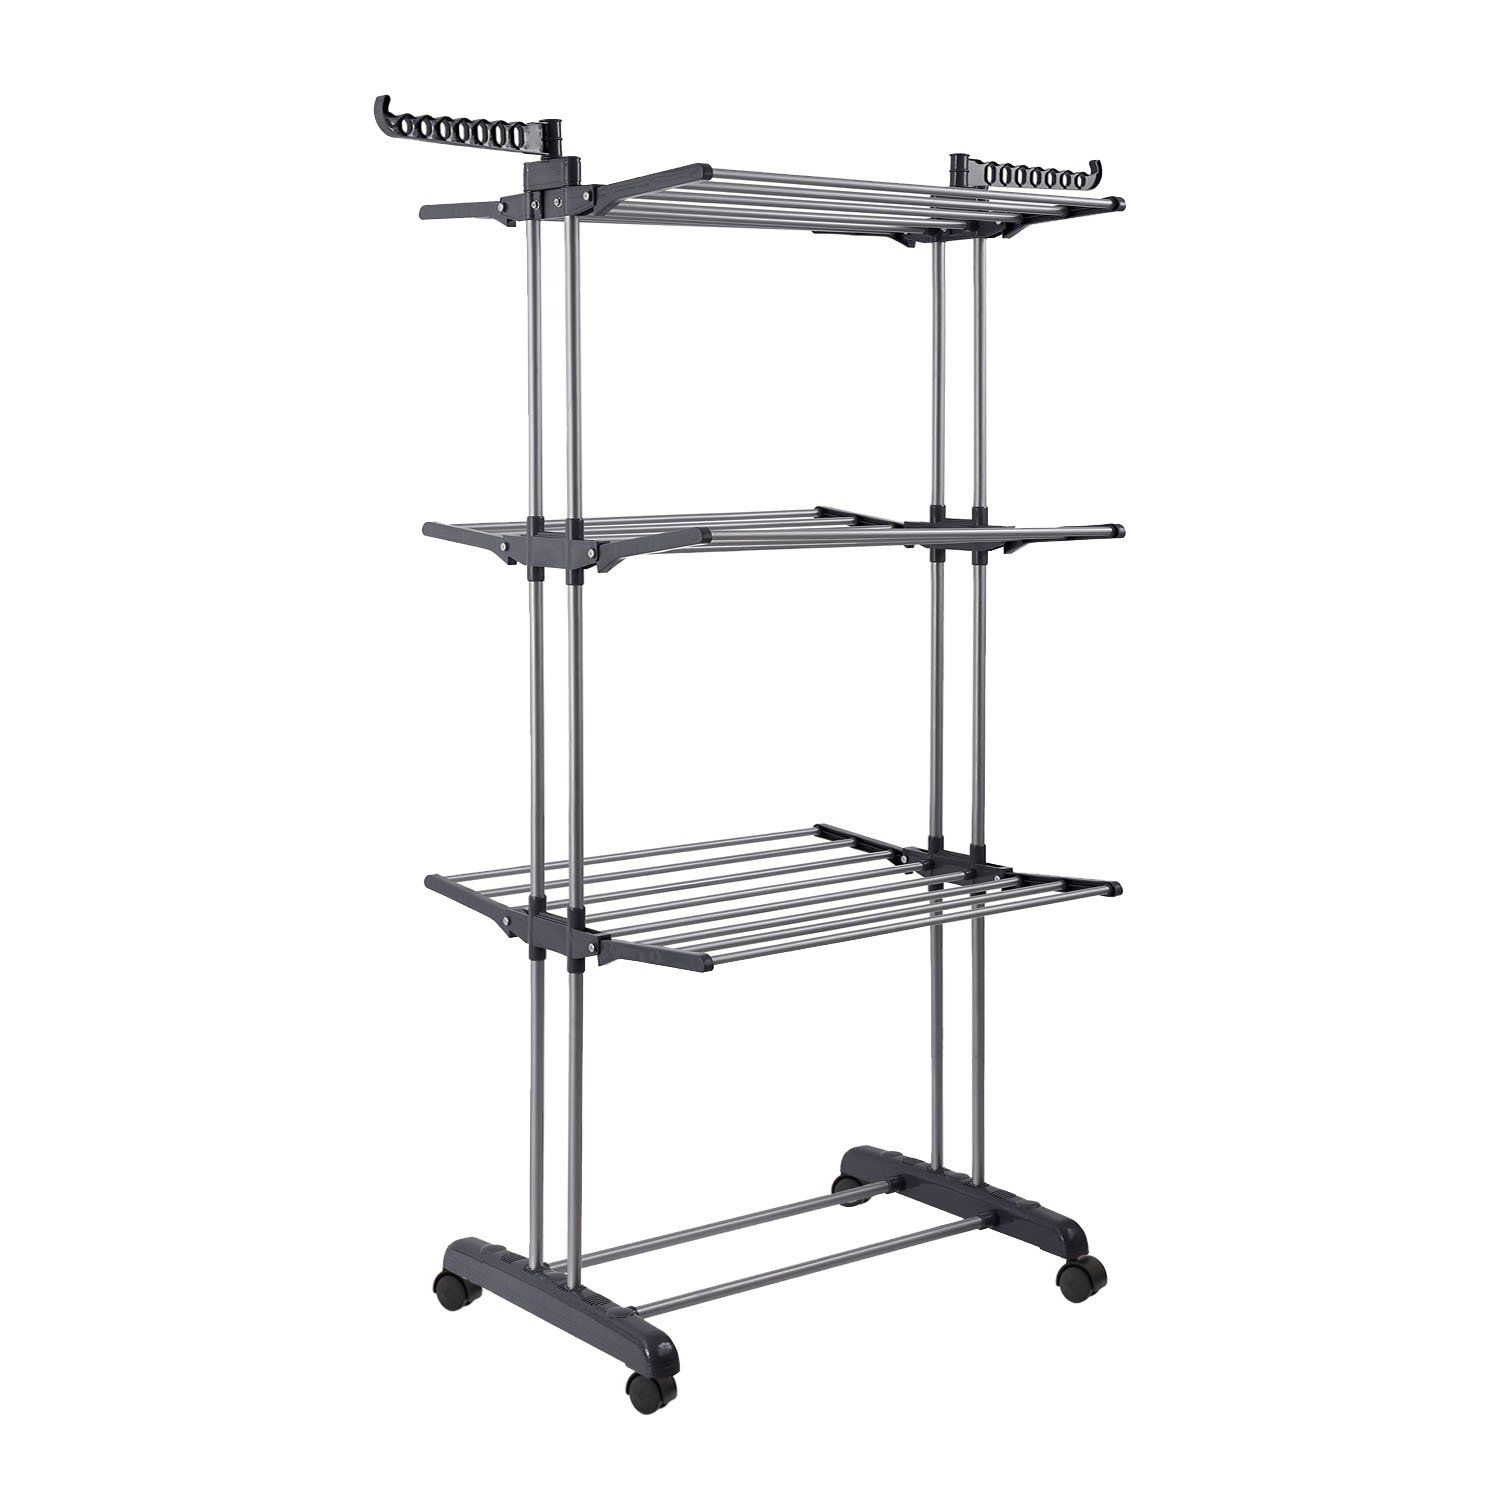 Jusdreen 3 Tier Rolling Clothes Drying Rack Clothes Garment Rack